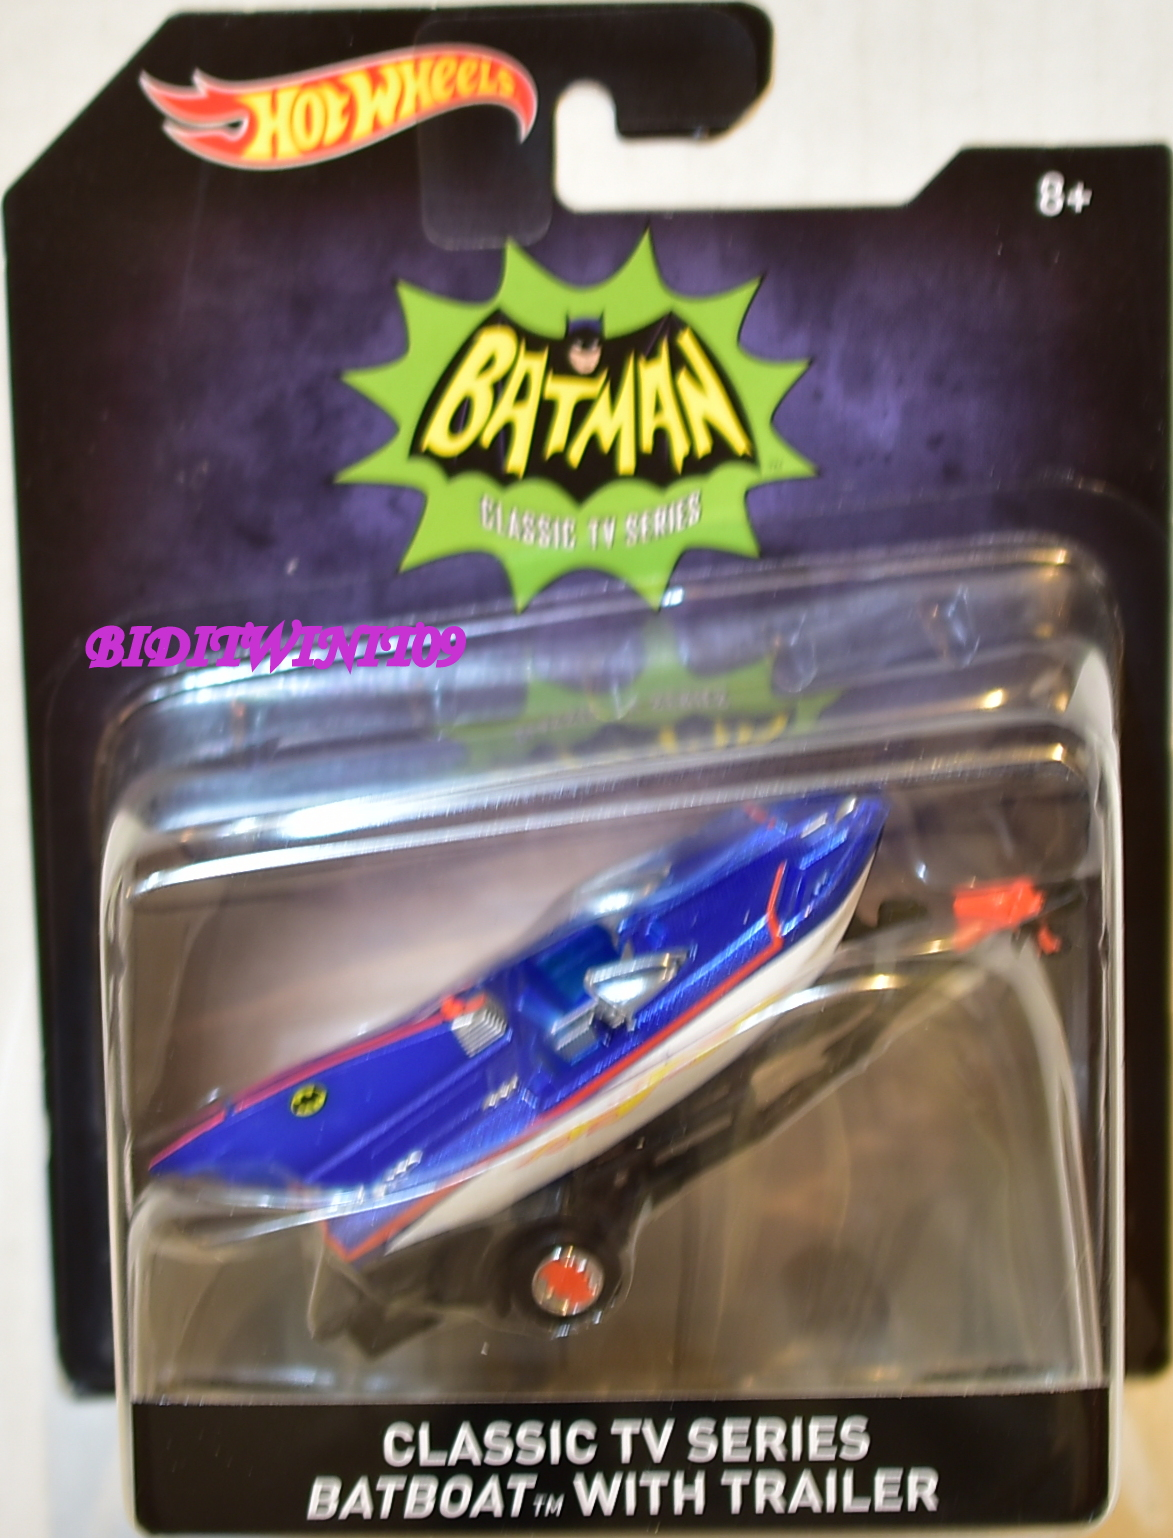 HOT WHEELS 2016 CLASSIC TV SERIES BATBOAT WITH TRAILER SCALE 1:50